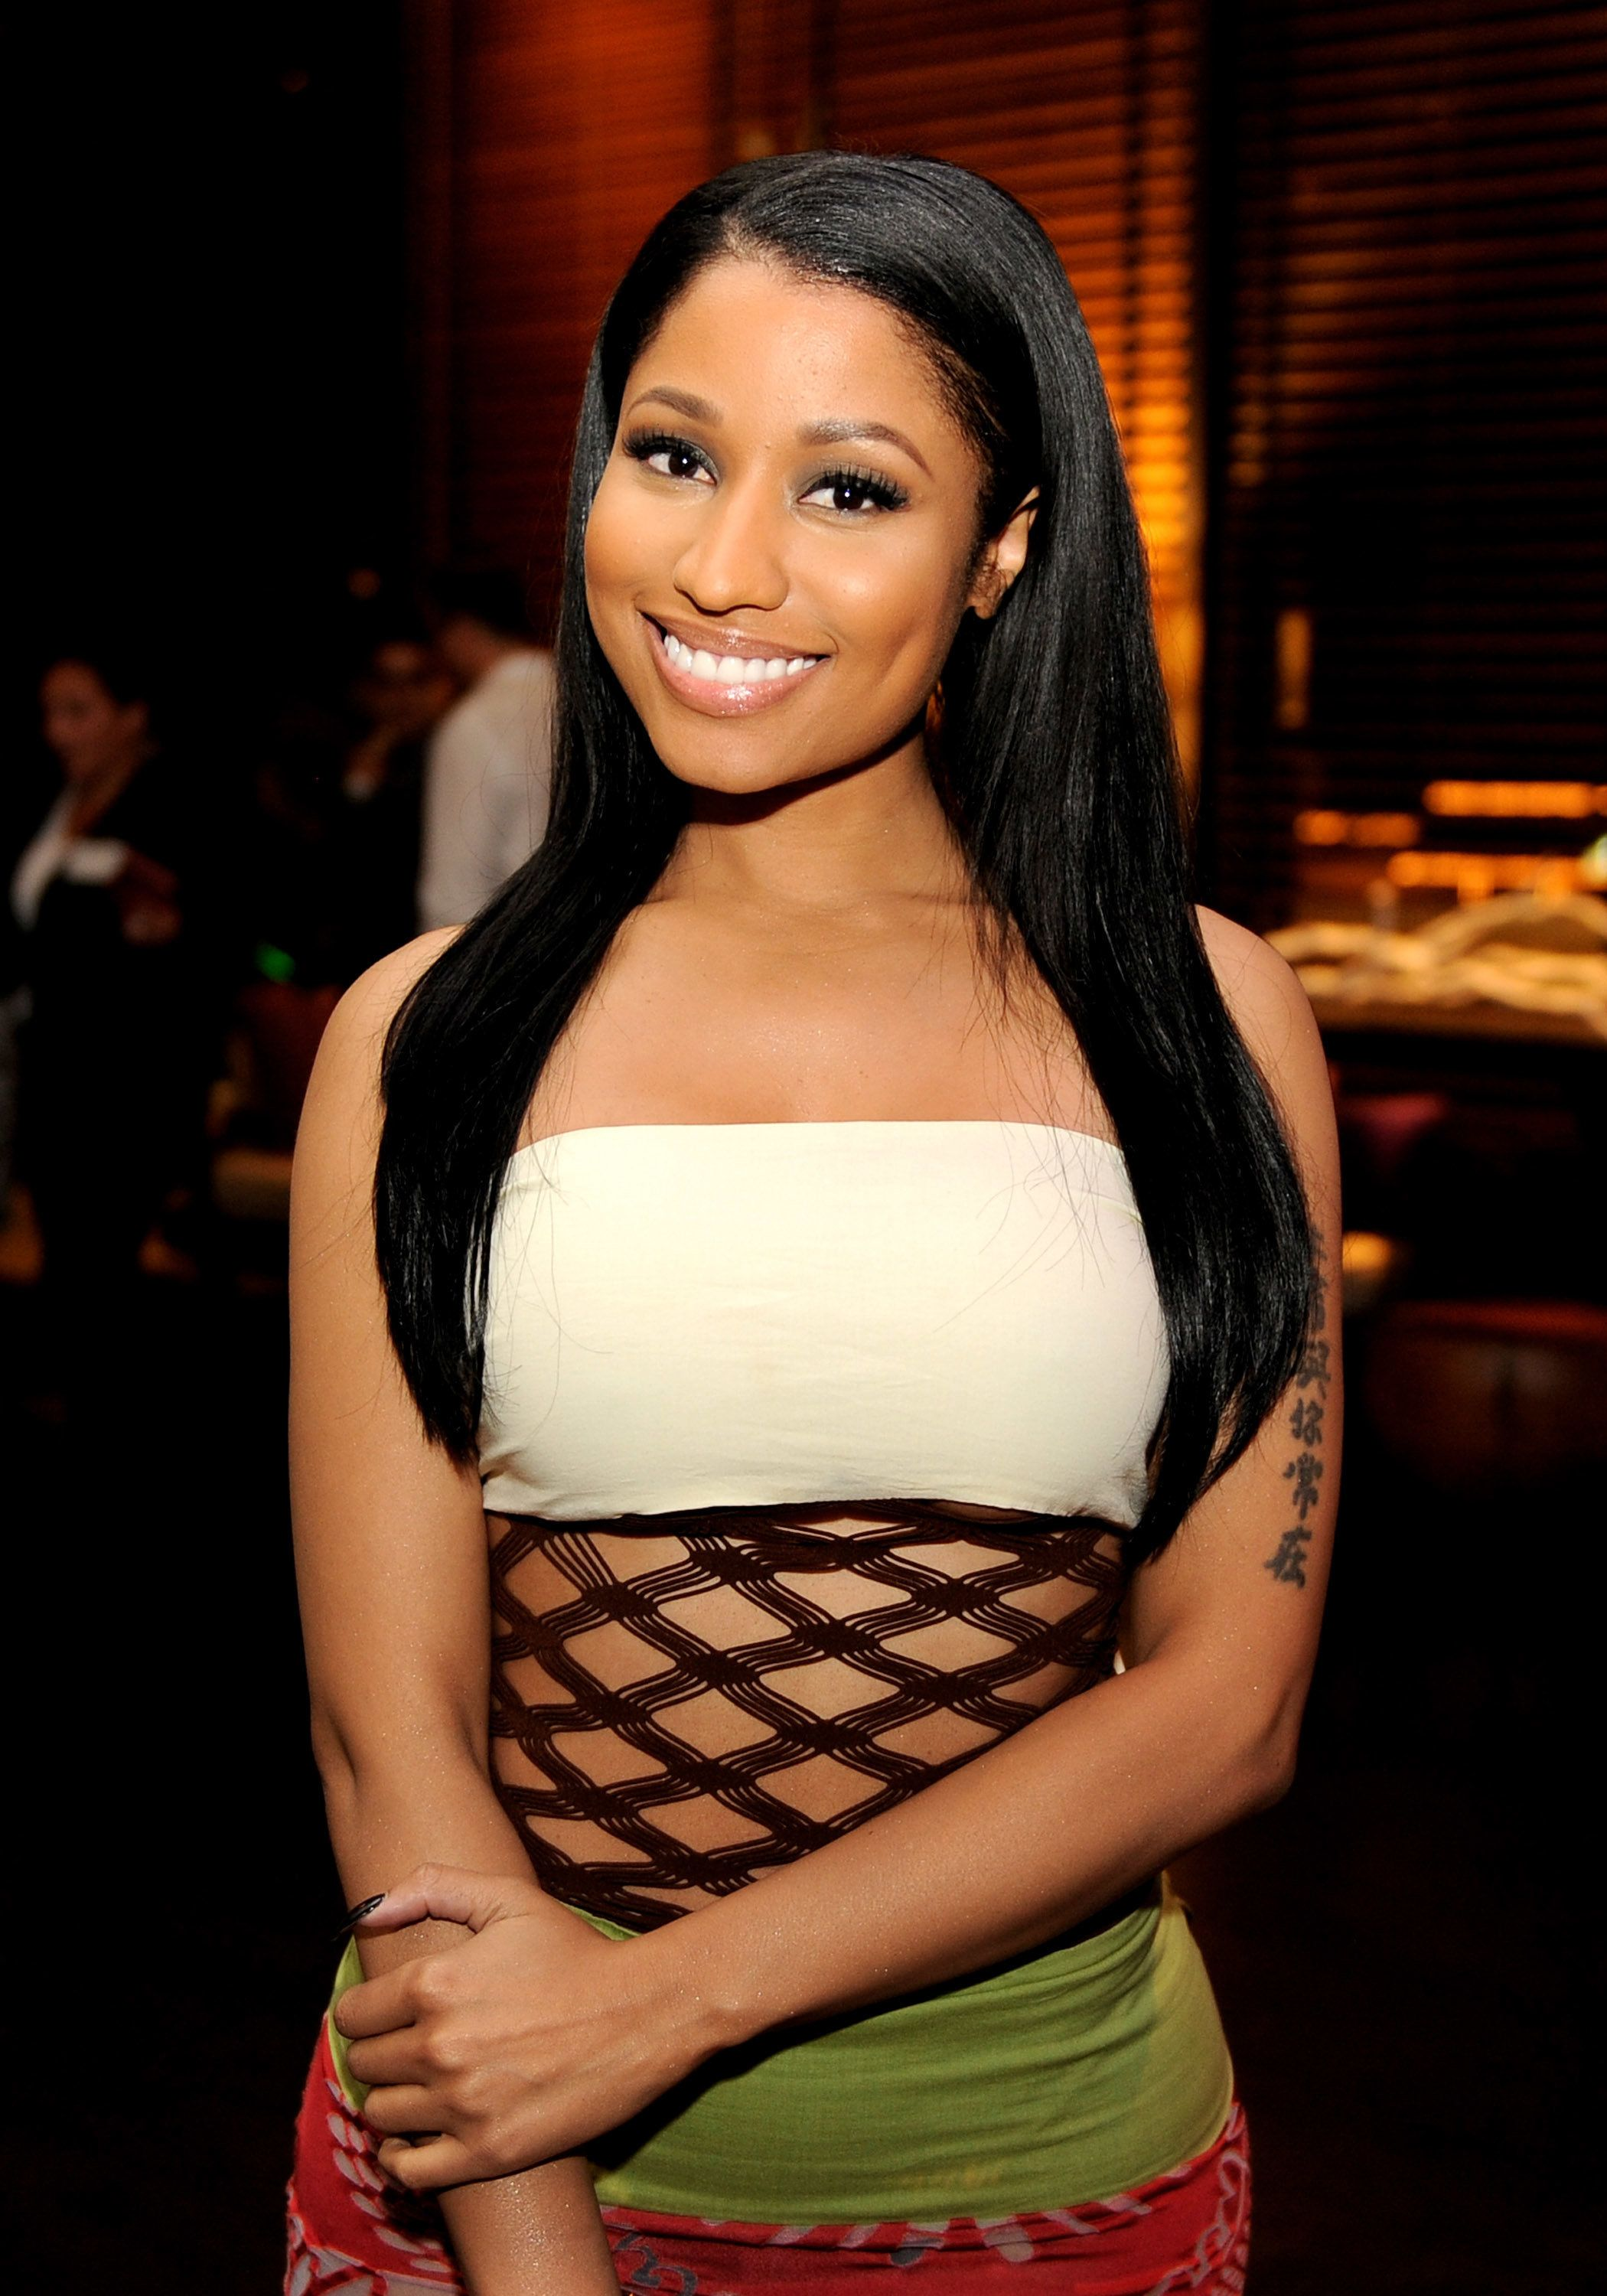 LOS ANGELES, CA - APRIL 21:  Singer Nicki Minaj arrives at the after party for the premiere of Twentieth Century Fox's 'The Other Woman' at The W Hotel on April 21, 2014 in Los Angeles, California.  (Photo by Kevin Winter/Getty Images)